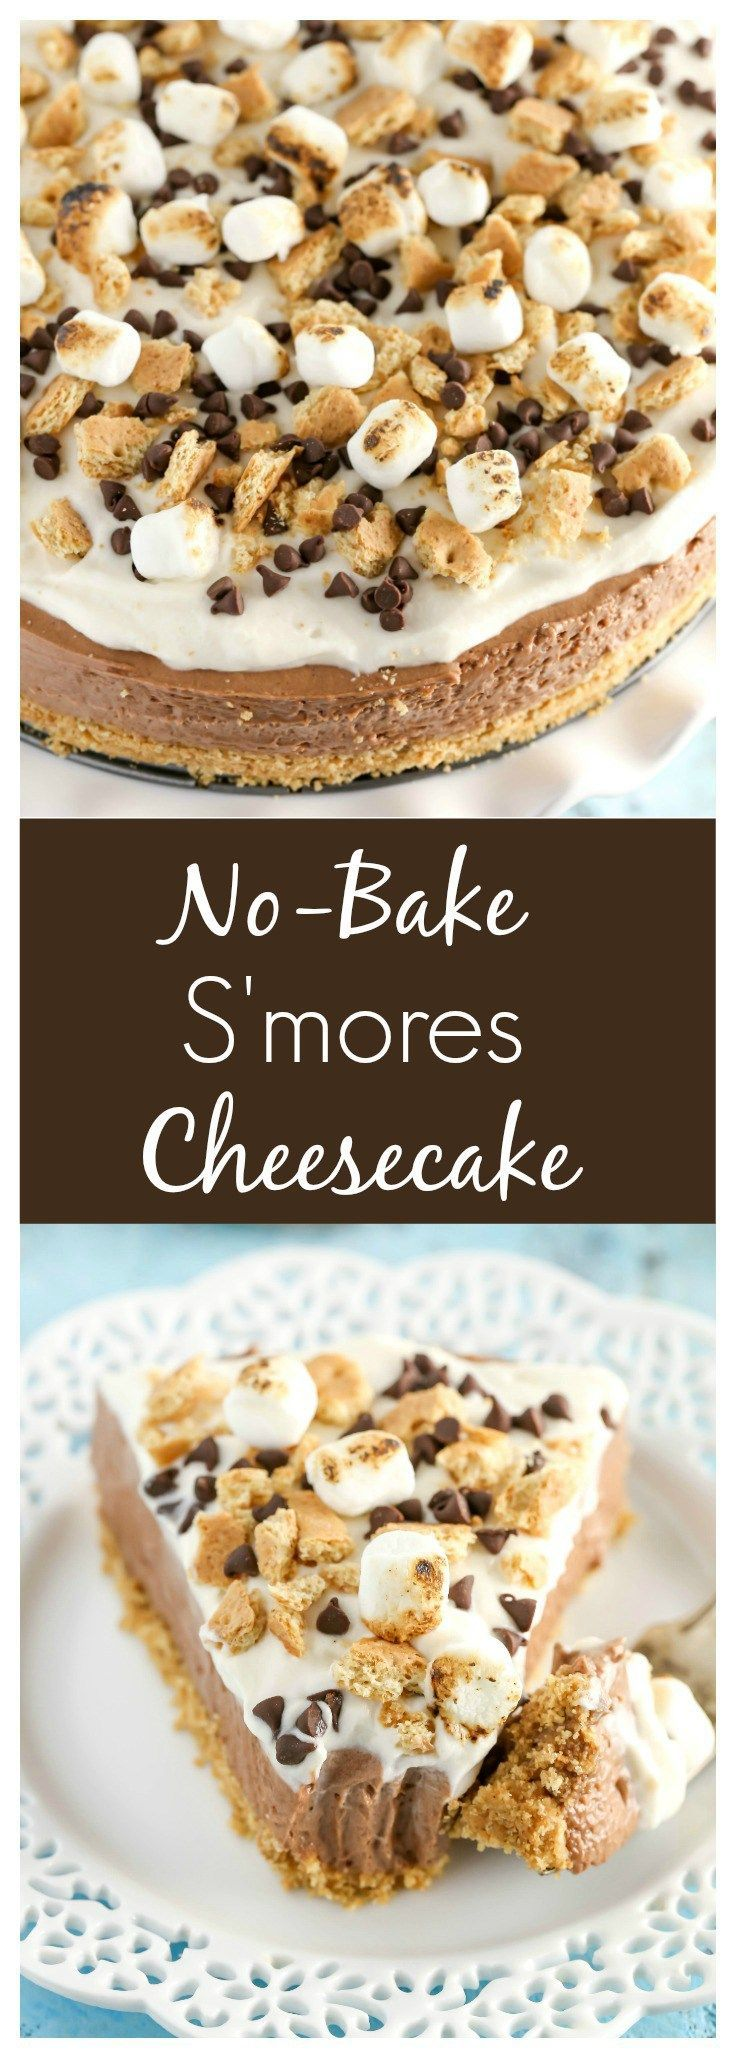 A homemade graham cracker crust topped with a no-bake chocolate cheesecake filling and marshmallow fluff whipped cream. This No-Bake S'mores Cheesecake is the ultimate summer dessert!